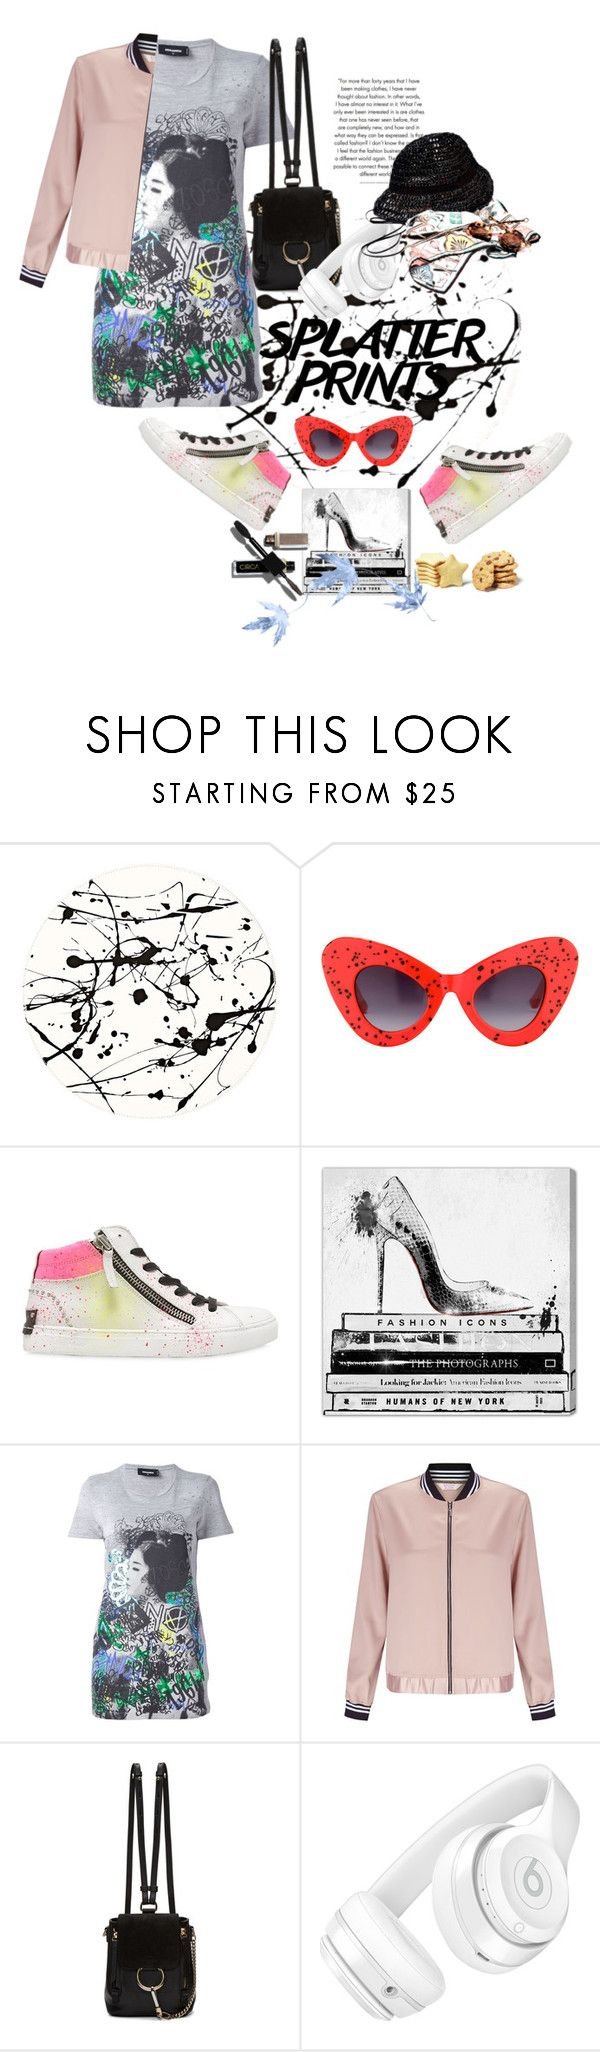 """Splatter Splash!"" by wodecai ❤ liked on Polyvore featuring Lisa Perry, Jeremy Scott, Crime, Oliver Gal Artist Co., Dsquared2, Miss Selfridge, Chloé and Beats by Dr. Dre"